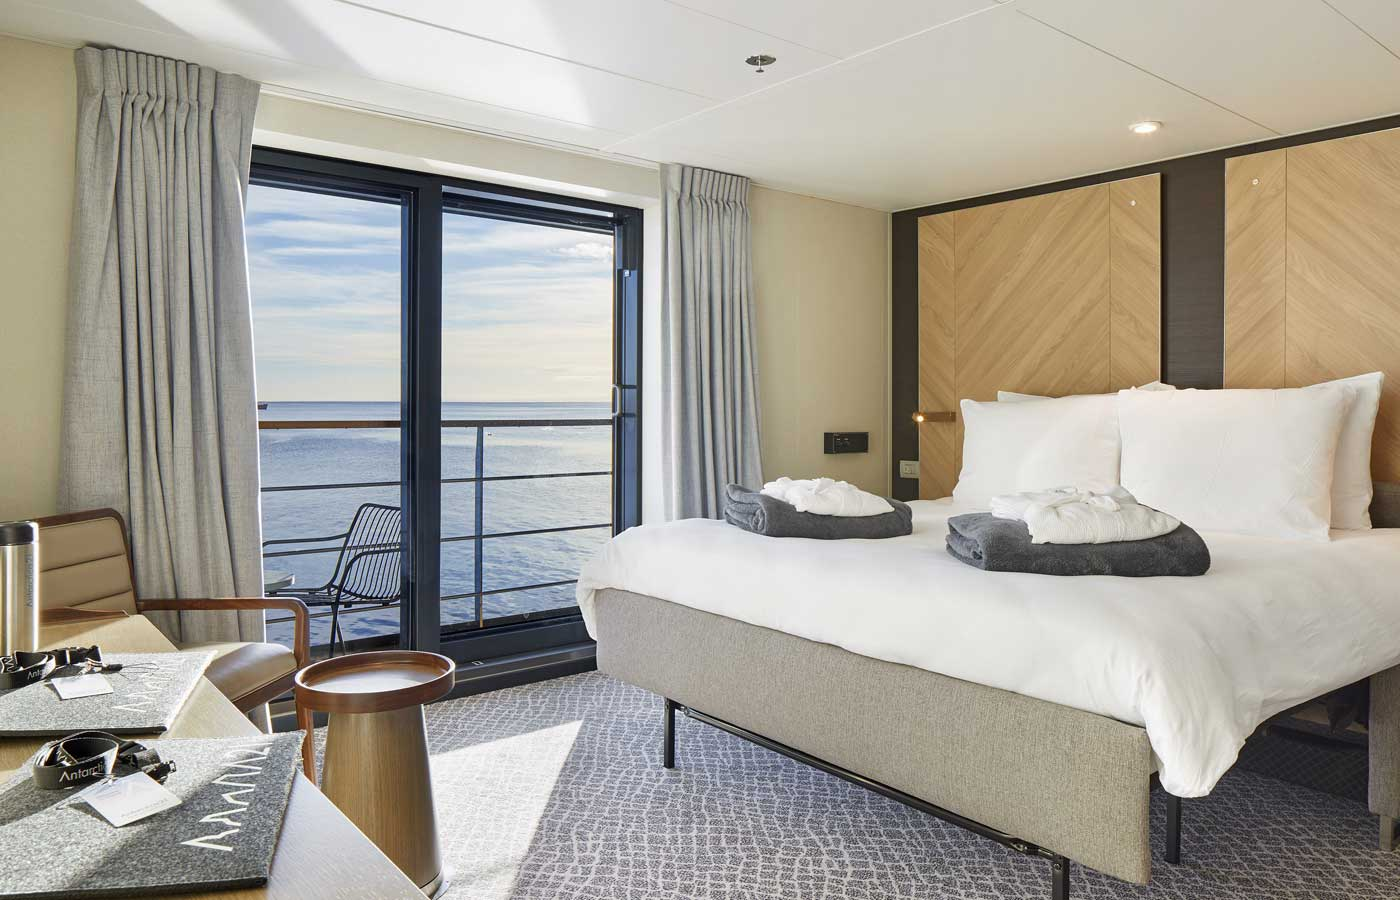 Triple Suite, Magellan Explorer